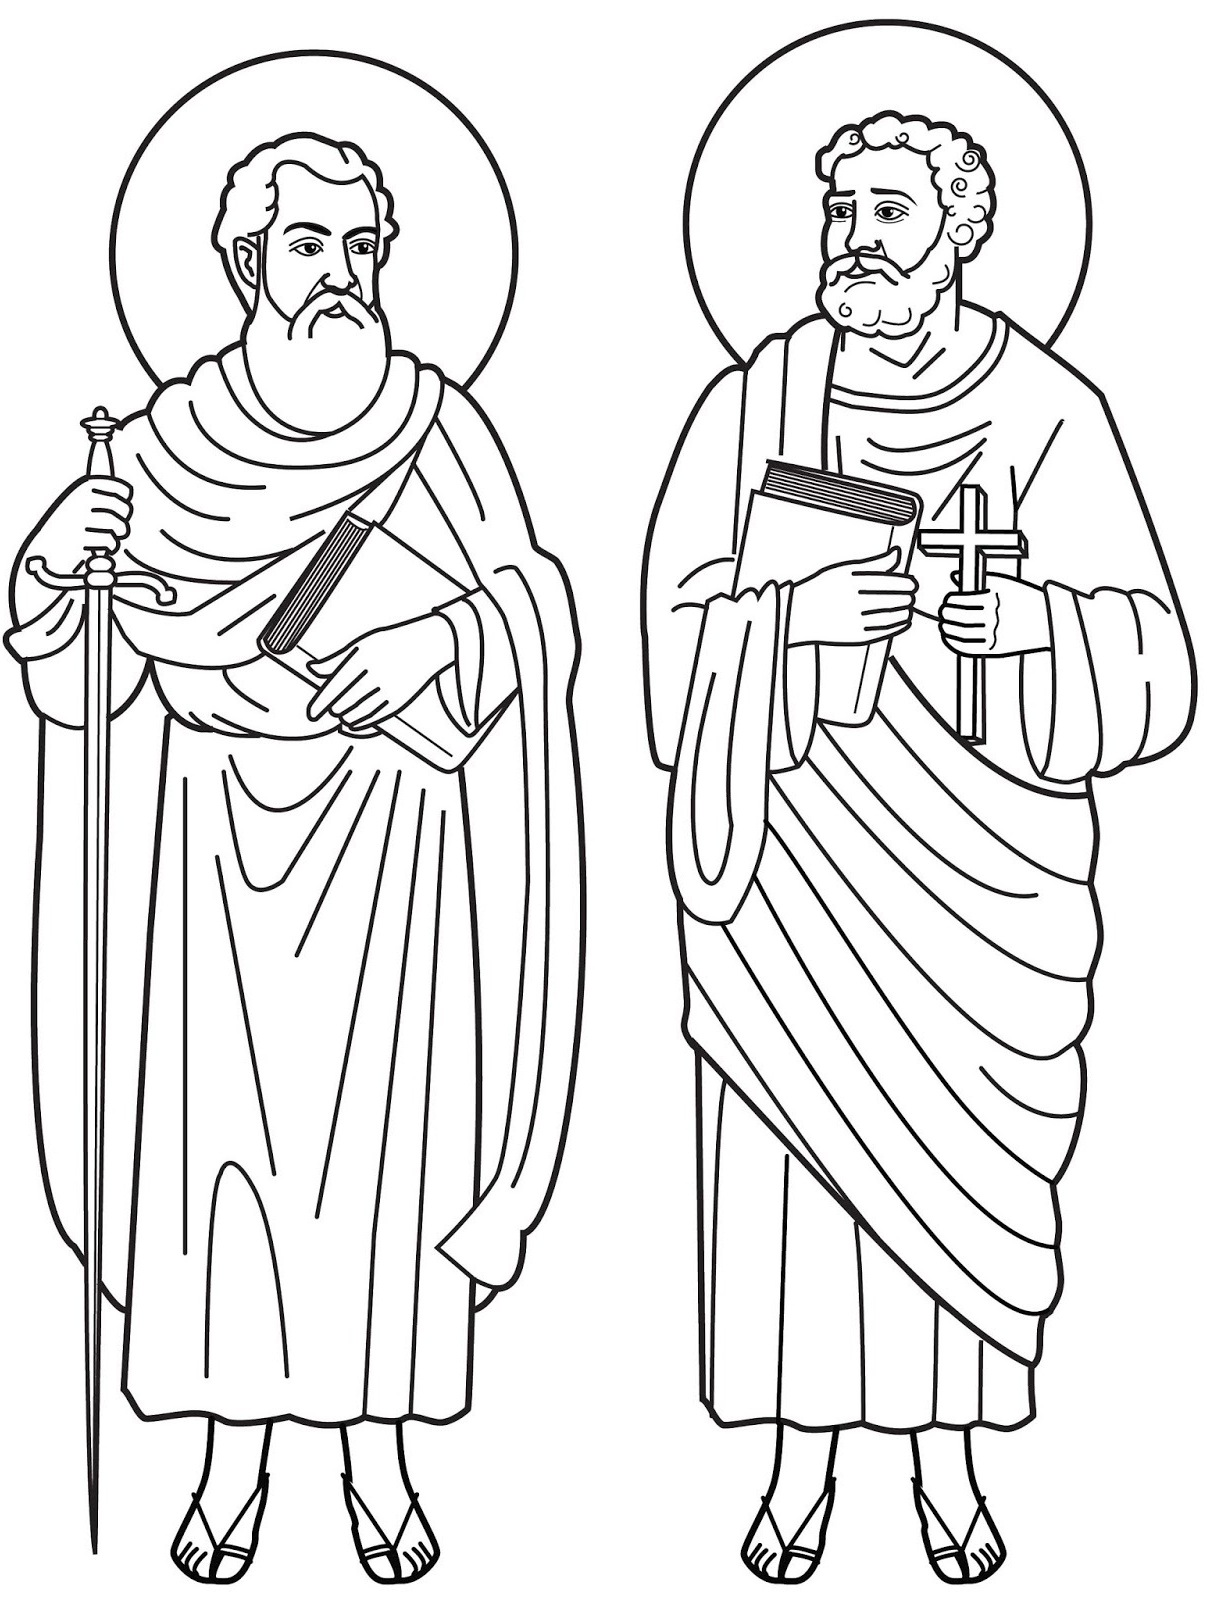 st-paul-and-st-peter-coloring-page-saints-day-coloring-pages-kids.jpg